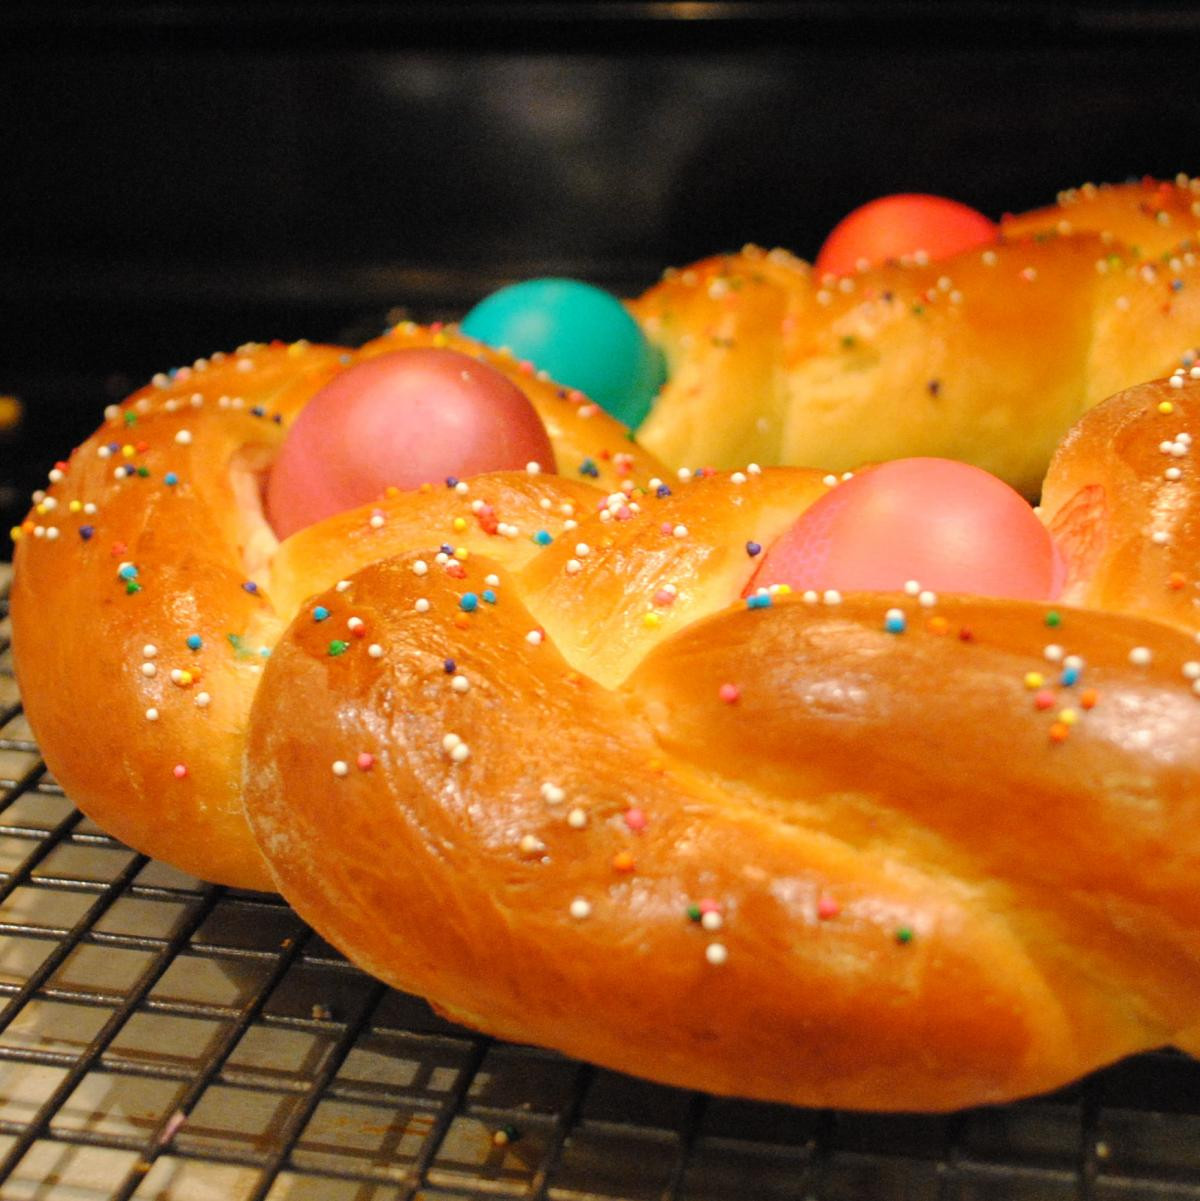 Easter Bread With Eggs  8 Sweet and Edible Easter Bread Centerpieces Dish